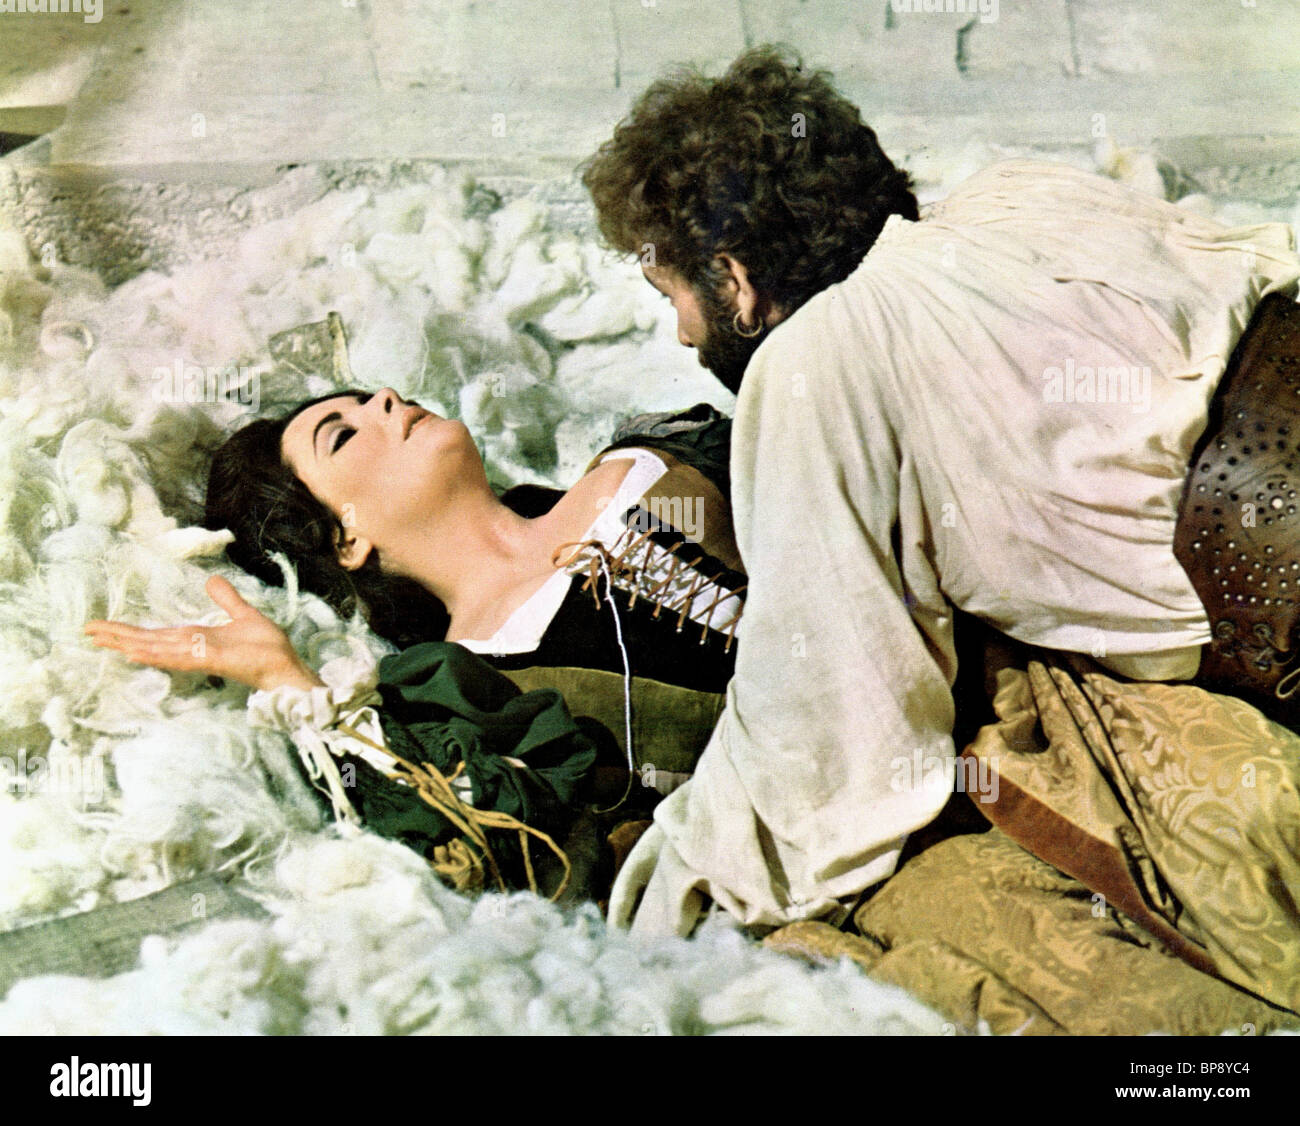 taming of the shrew couples A summary of themes in william shakespeare's the taming of the shrew rather, it offers a significant glimpse into the future lives of married couples.